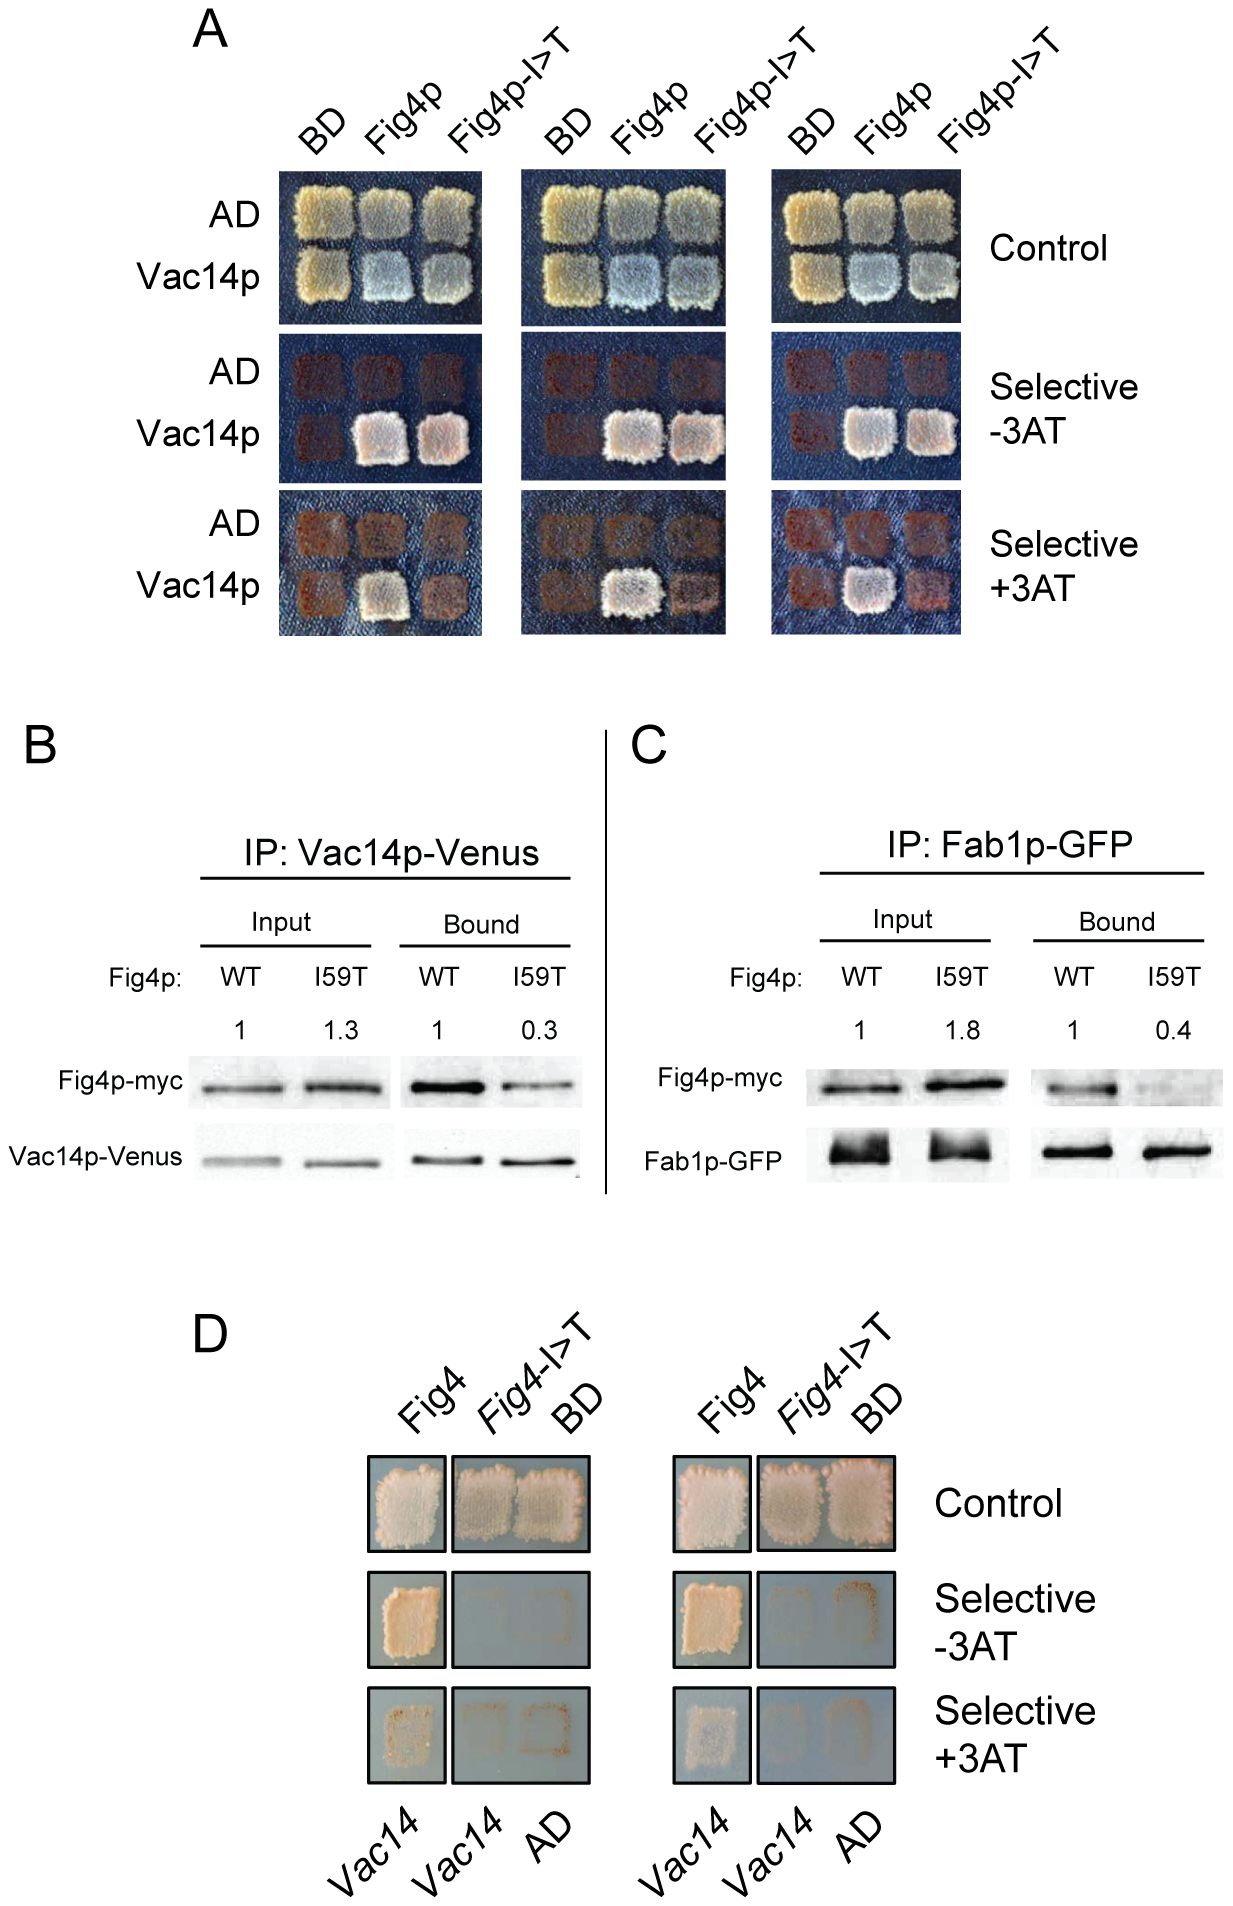 Impaired interaction of FIG4-I41T mutant protein with VAC14 and reduced co-immunoprecipitation with FAB1.